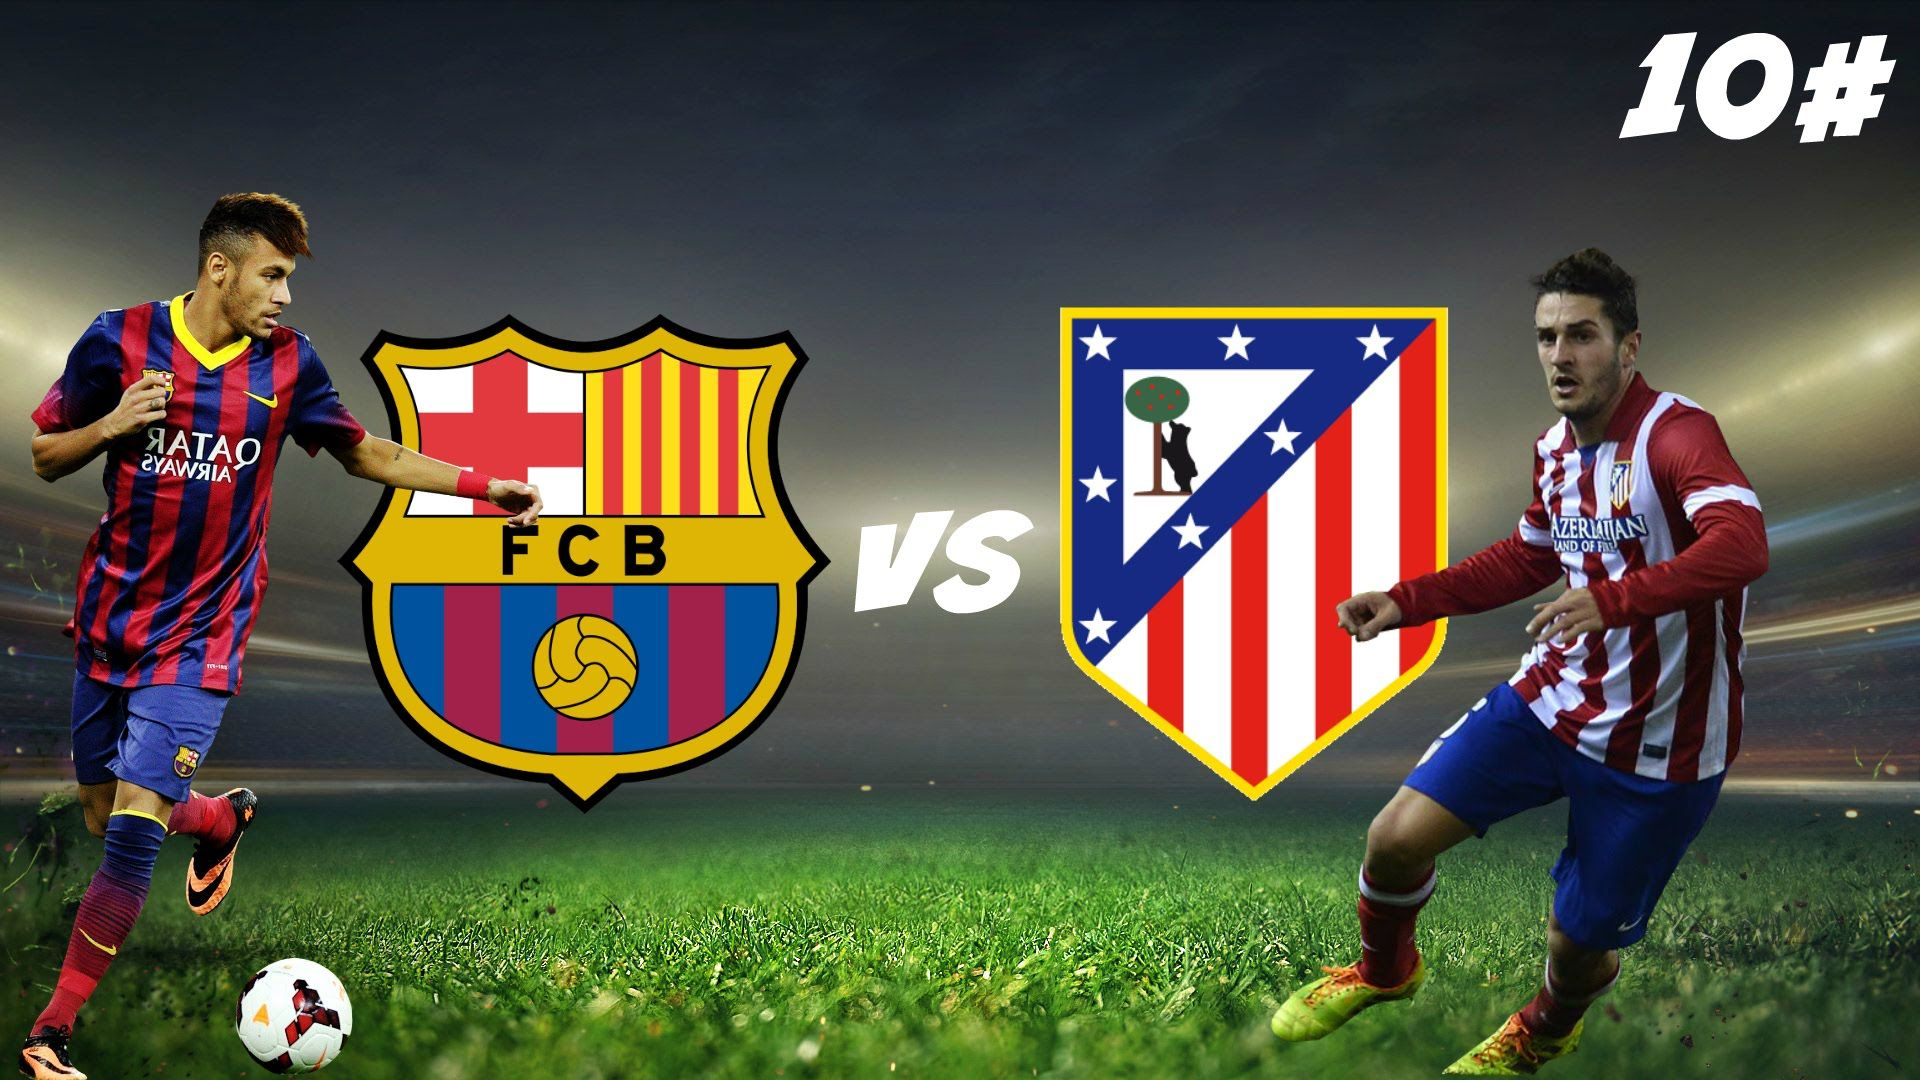 Tv Schedule And Live Streaming Barcelona Vs Atletico Madrid Barcelona Vs Atletico Madrid Atlético Madrid Barcelona